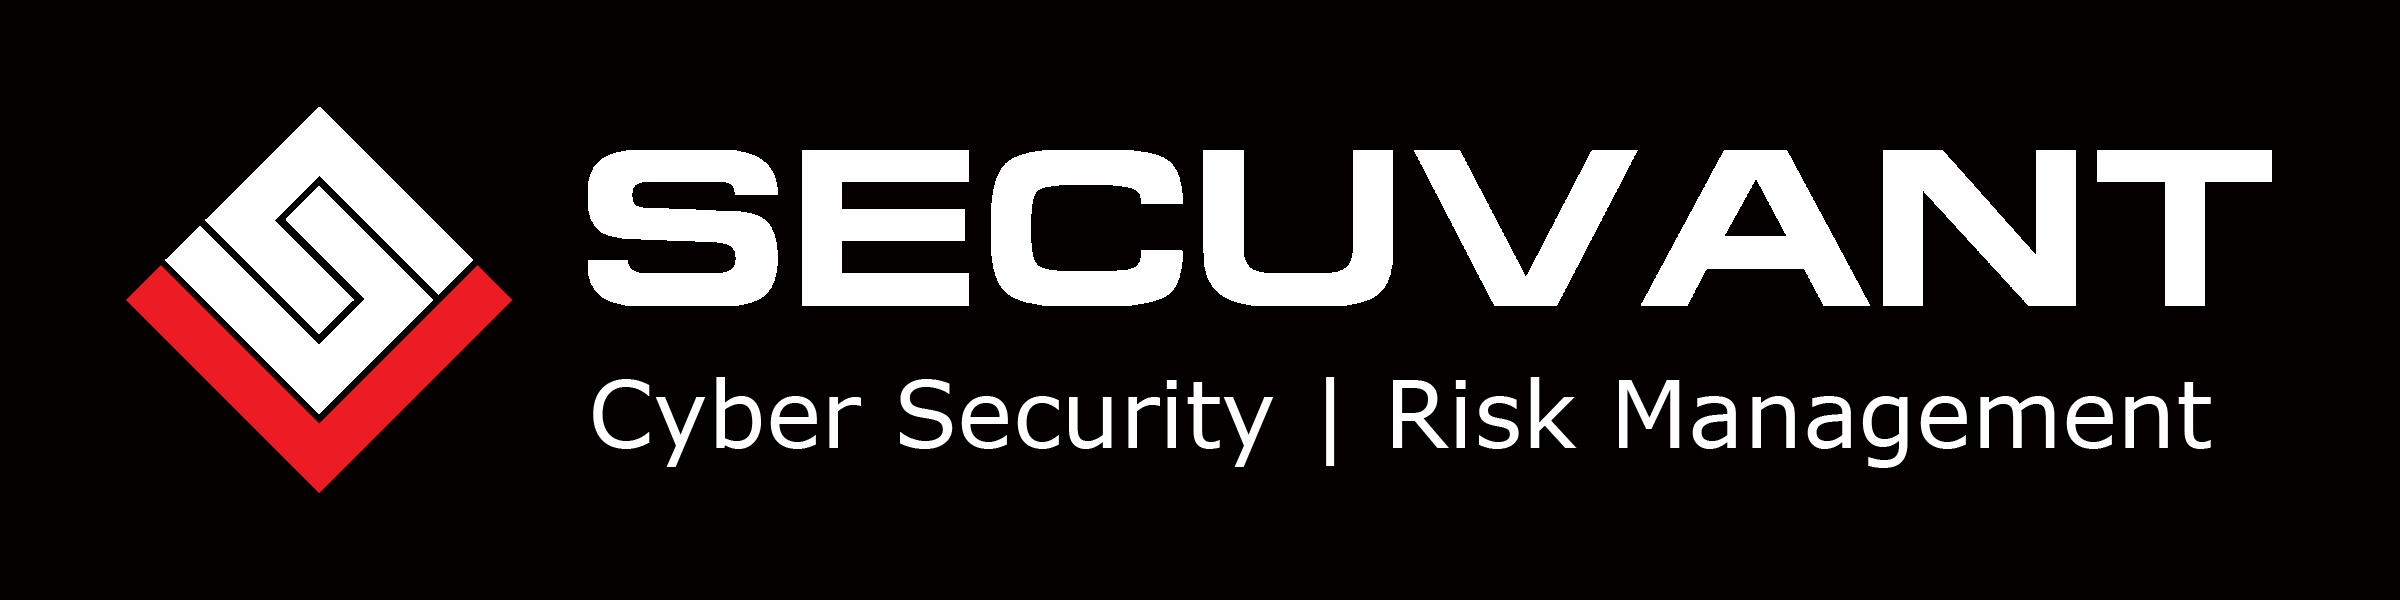 Secuvant Cyber Security Risk Management